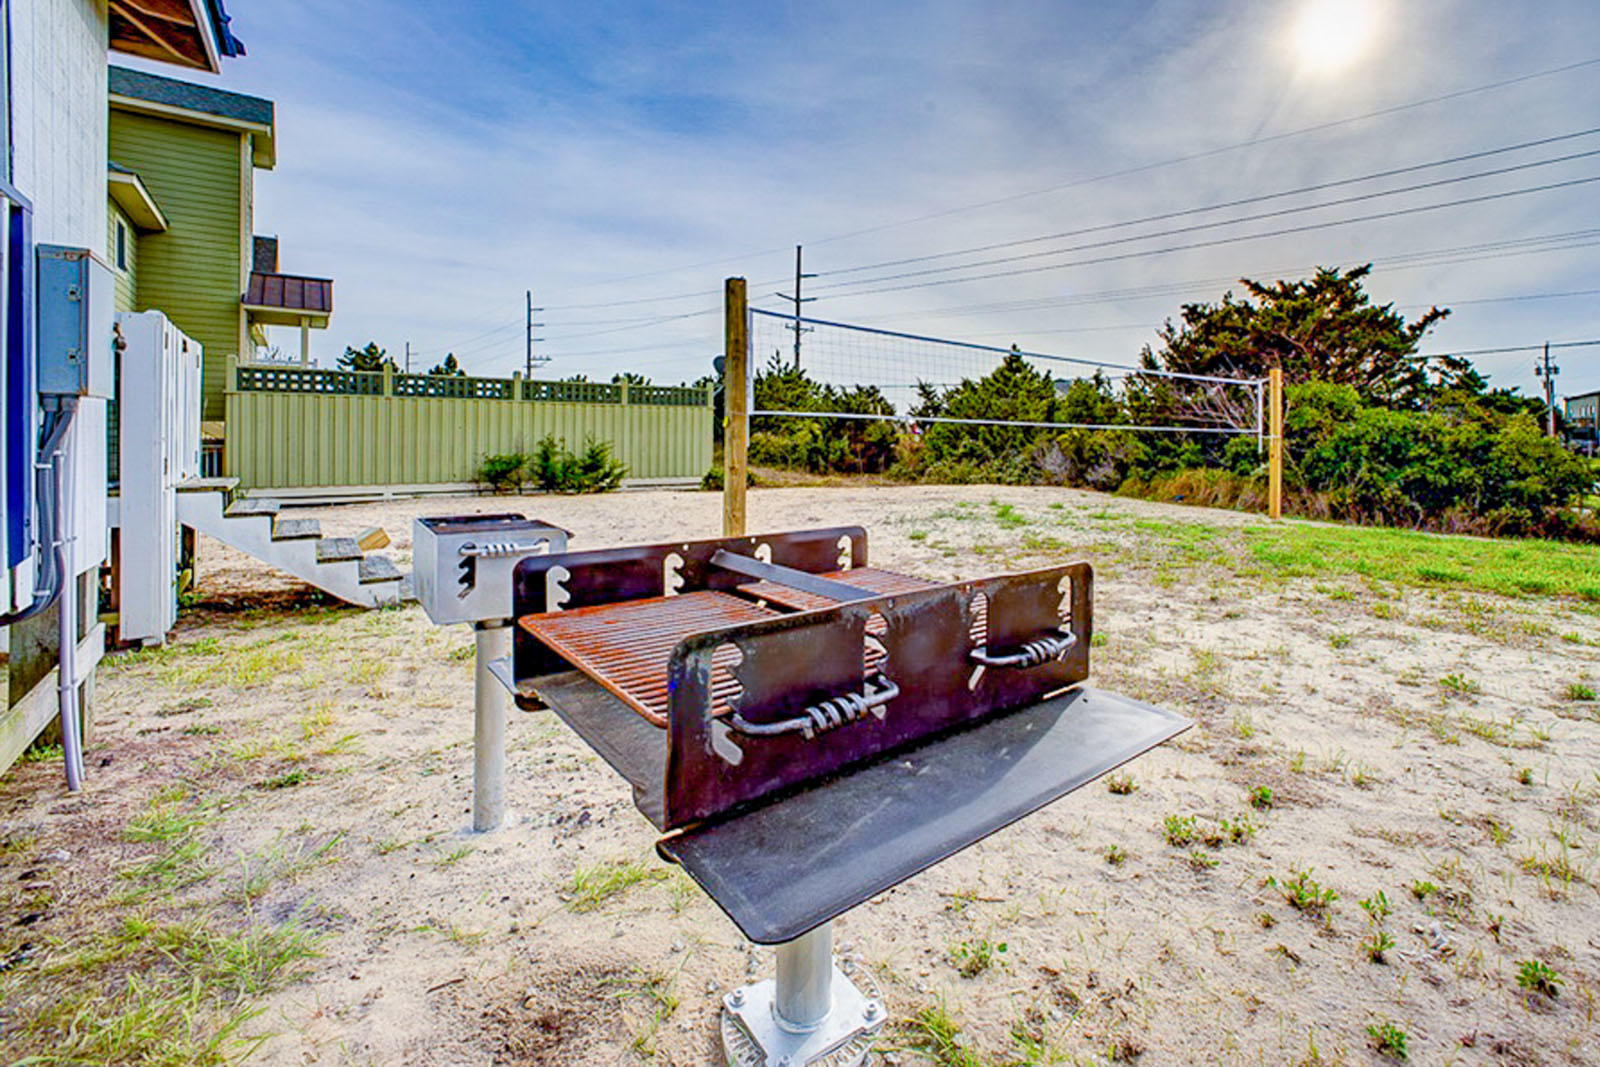 Volley ball court and charcoal grills